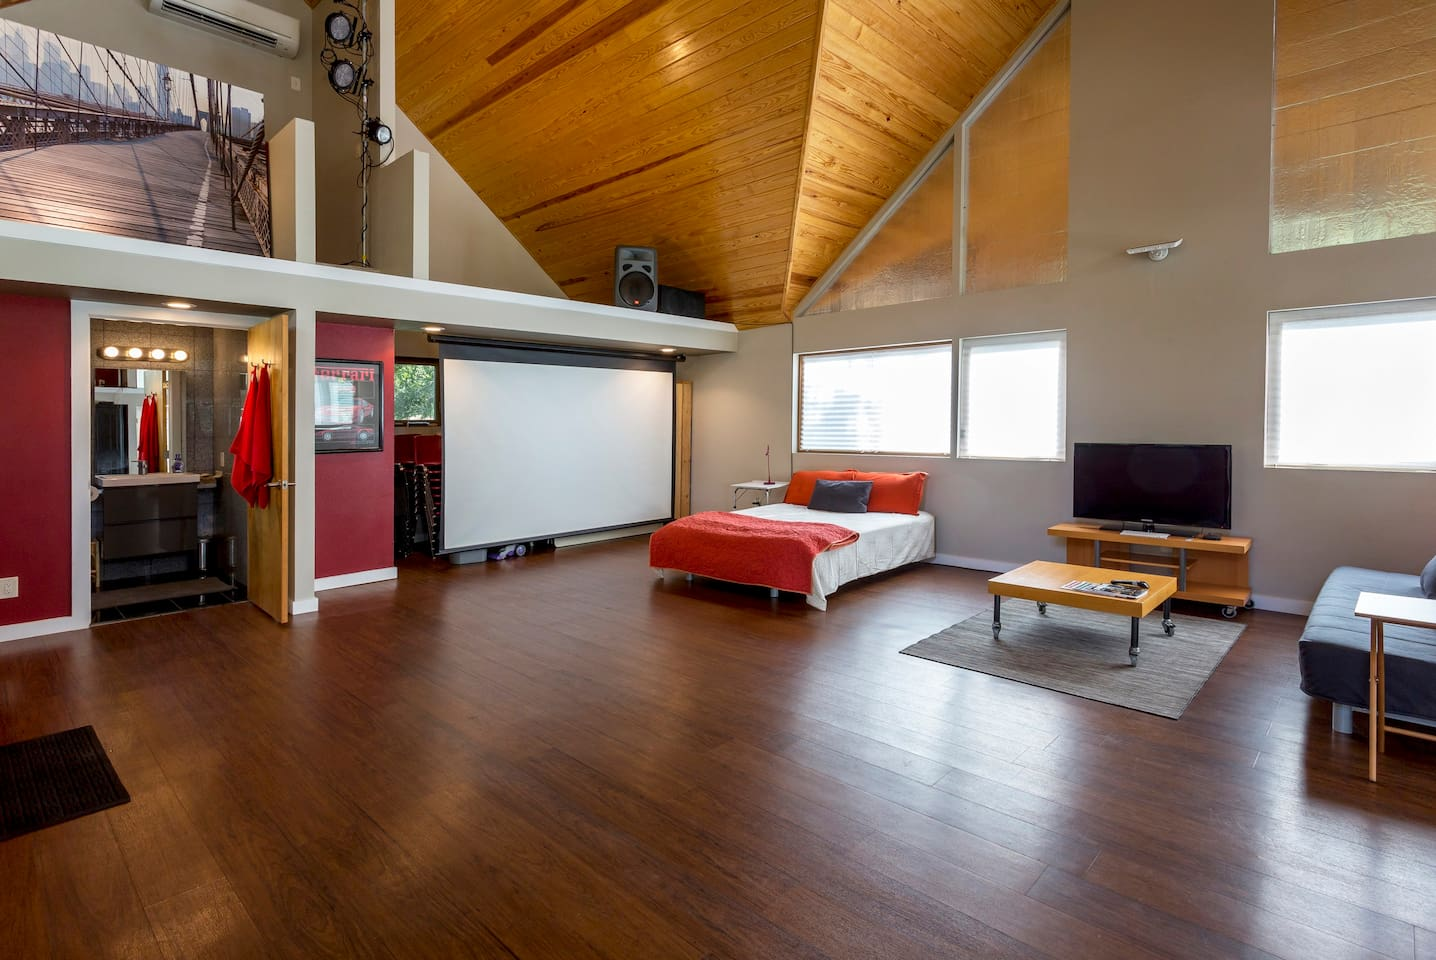 Wide open loft styling with vaulted wood ceilings.